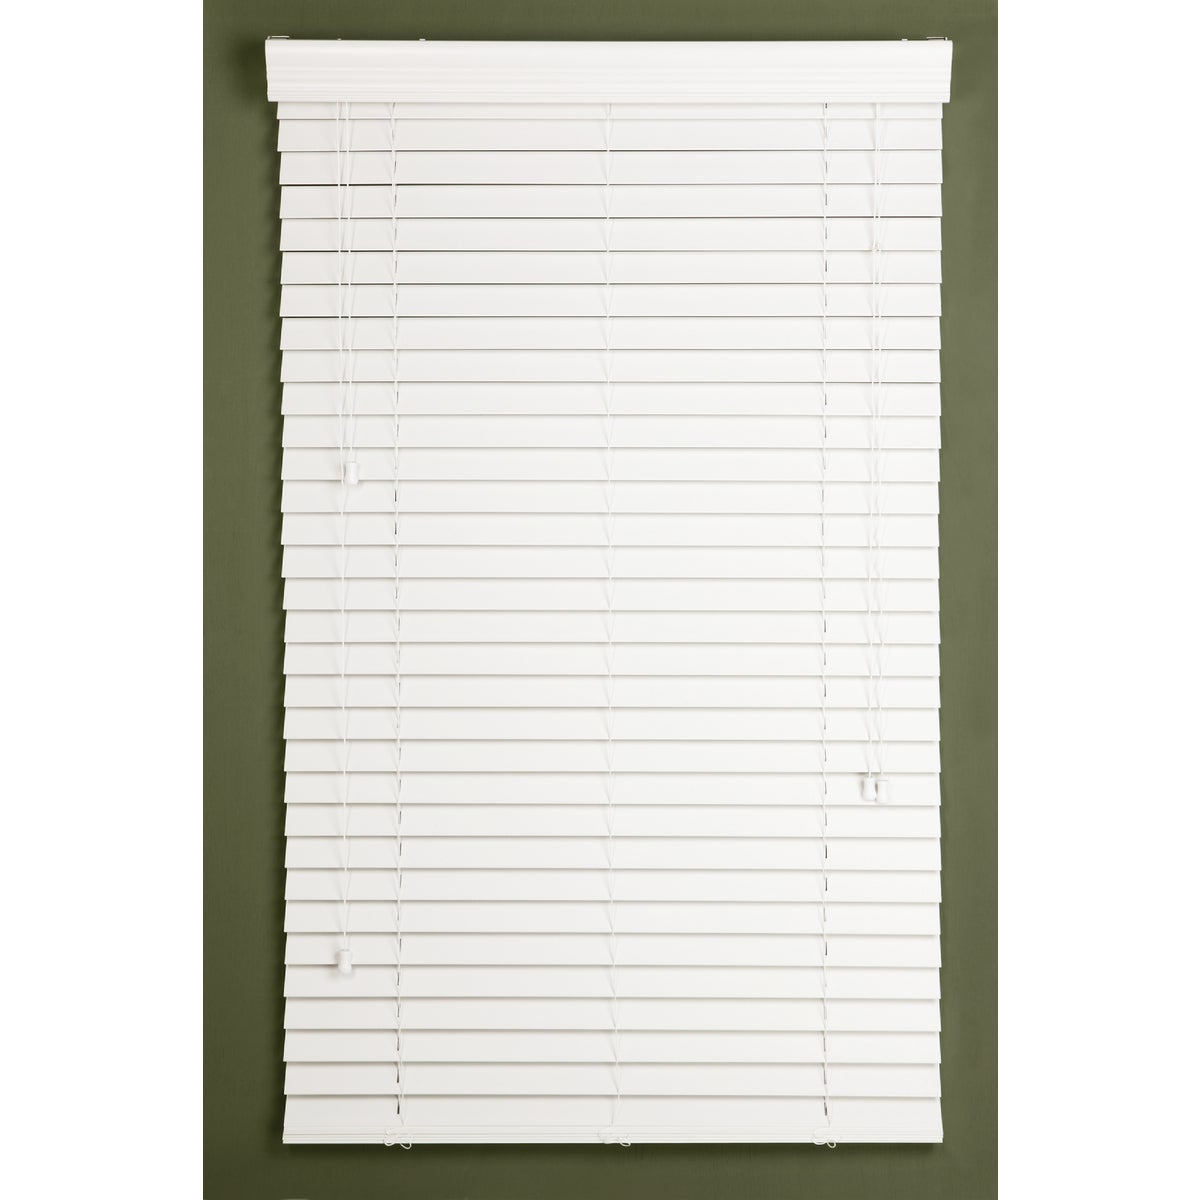 39X64 WHITE FAUX BLIND - 628155 by Lotus Wind Incom